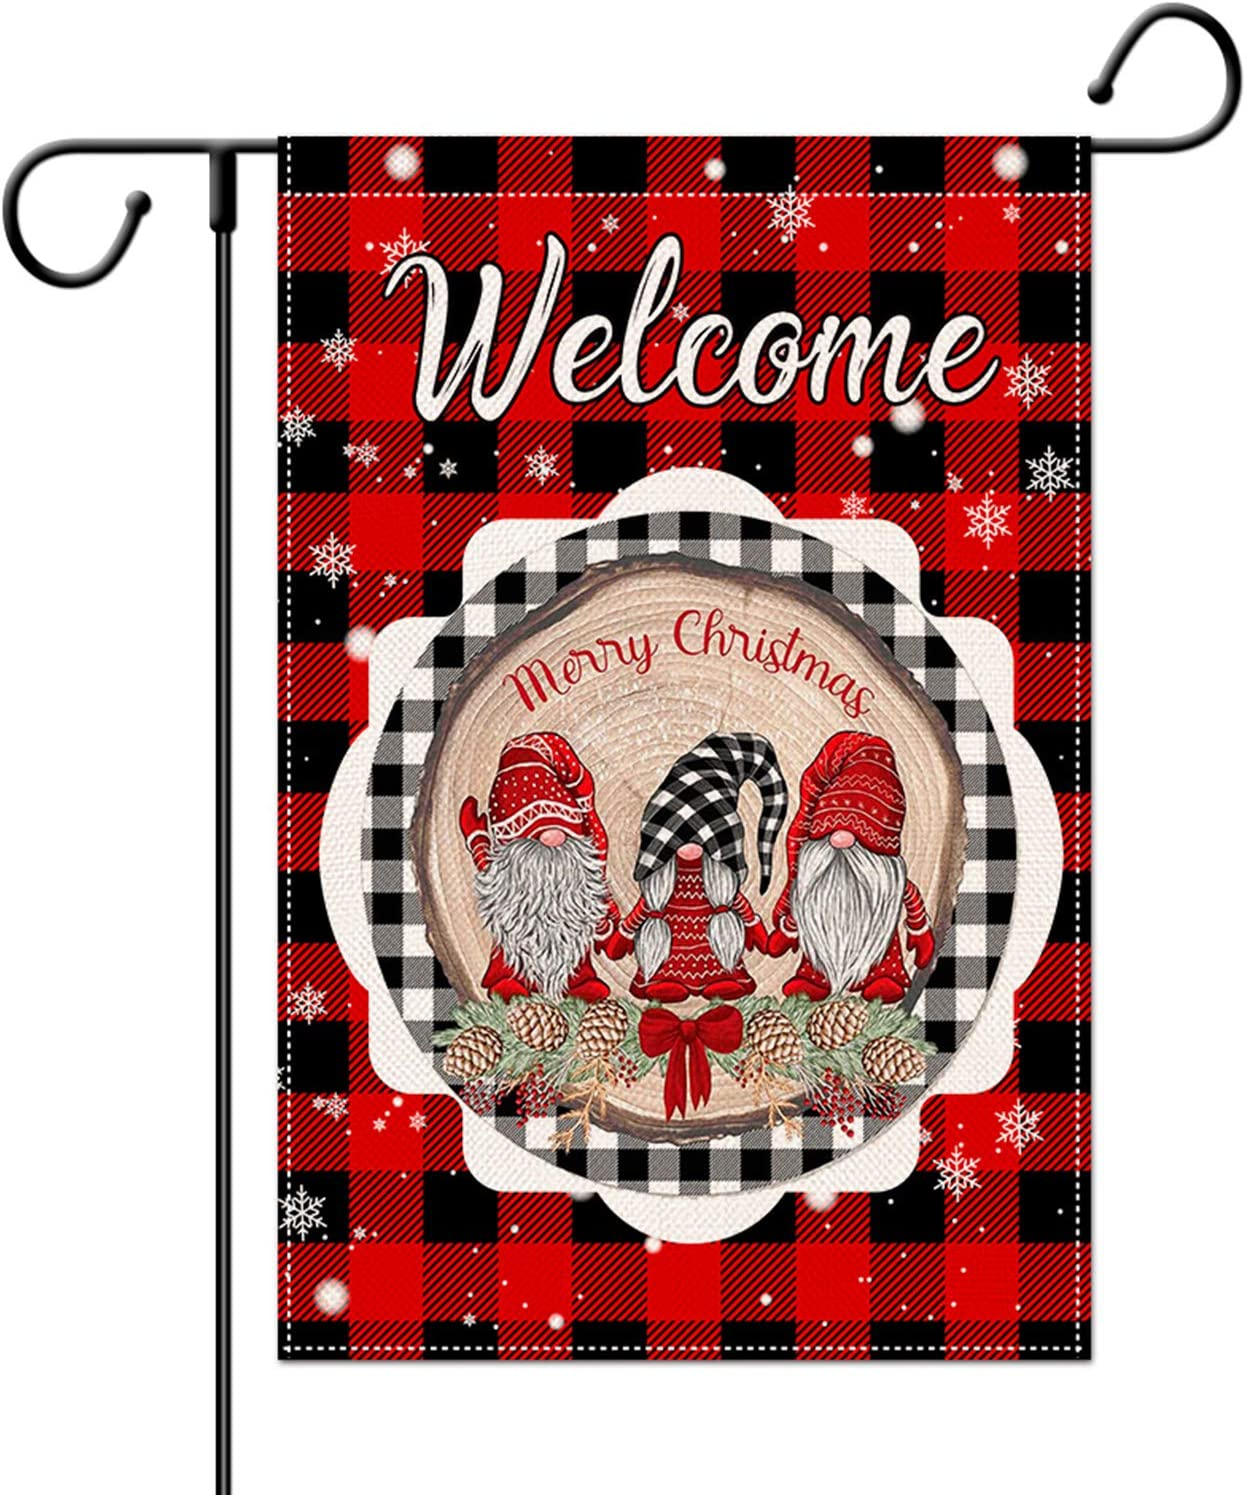 SHANGXING Christmas Gnomes Garden Flag-12.4 x 18.8 Inch Double-Sided Printed Red&Black Plaid Happy Xmas Yard Burlap Banner for Home & Outdoor Decoration (Snowflake Plaid)